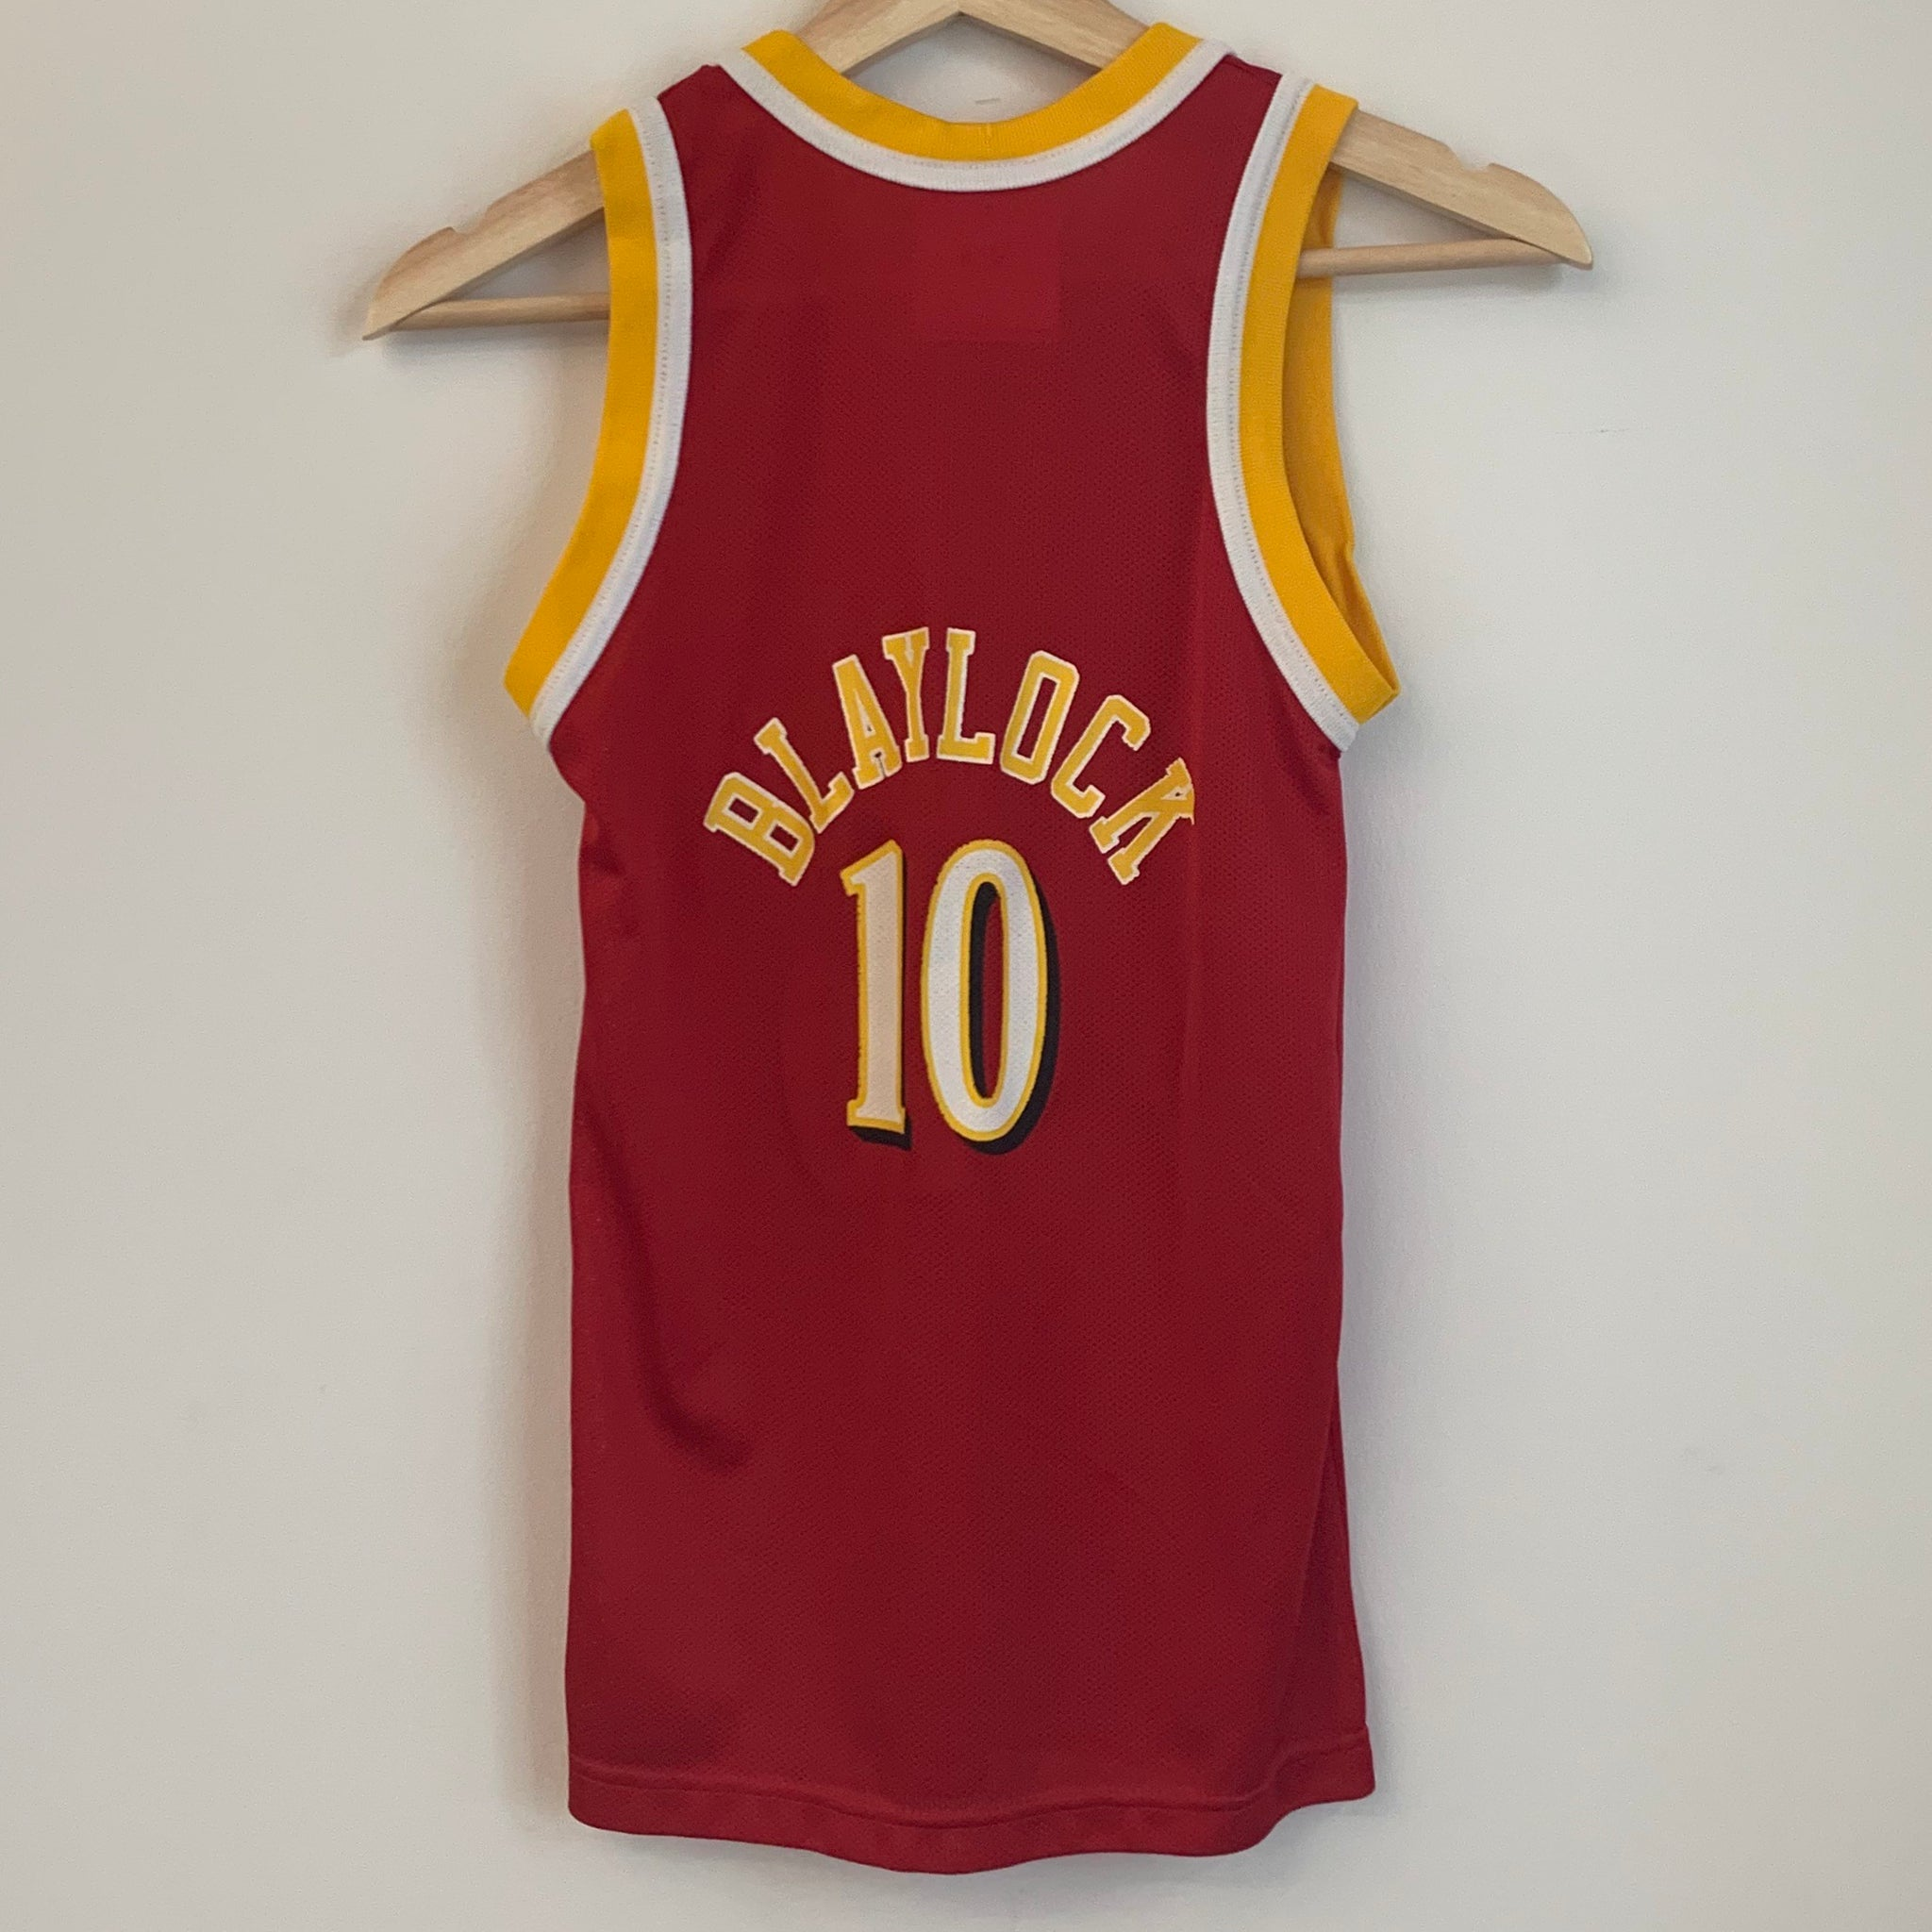 Champion Mookie Blaylock Atlanta Hawks Red Youth Basketball Jersey